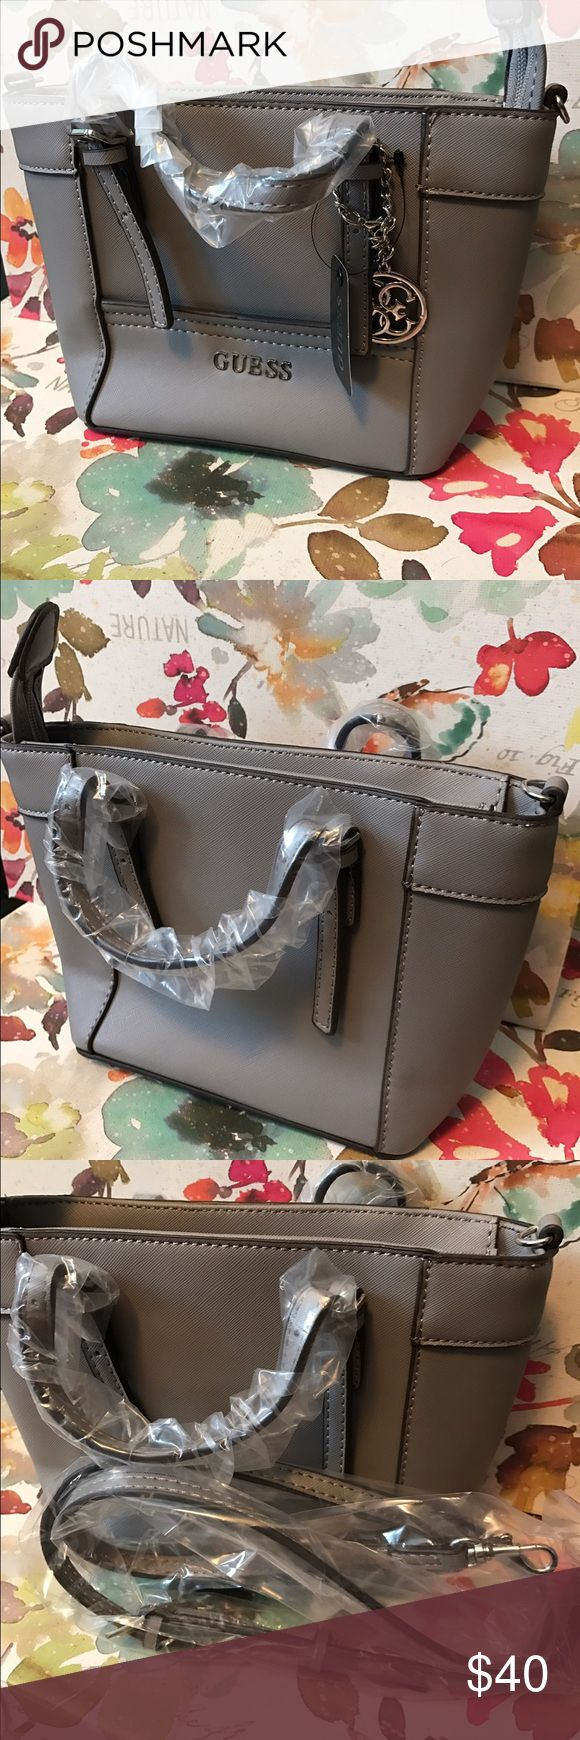 Mini Guess gray purse Brand new, never been used. Originally ordered it thinking it would be bigger because that's what I was looking for. Comes with cross body strap. Guess Bags Mini Bags